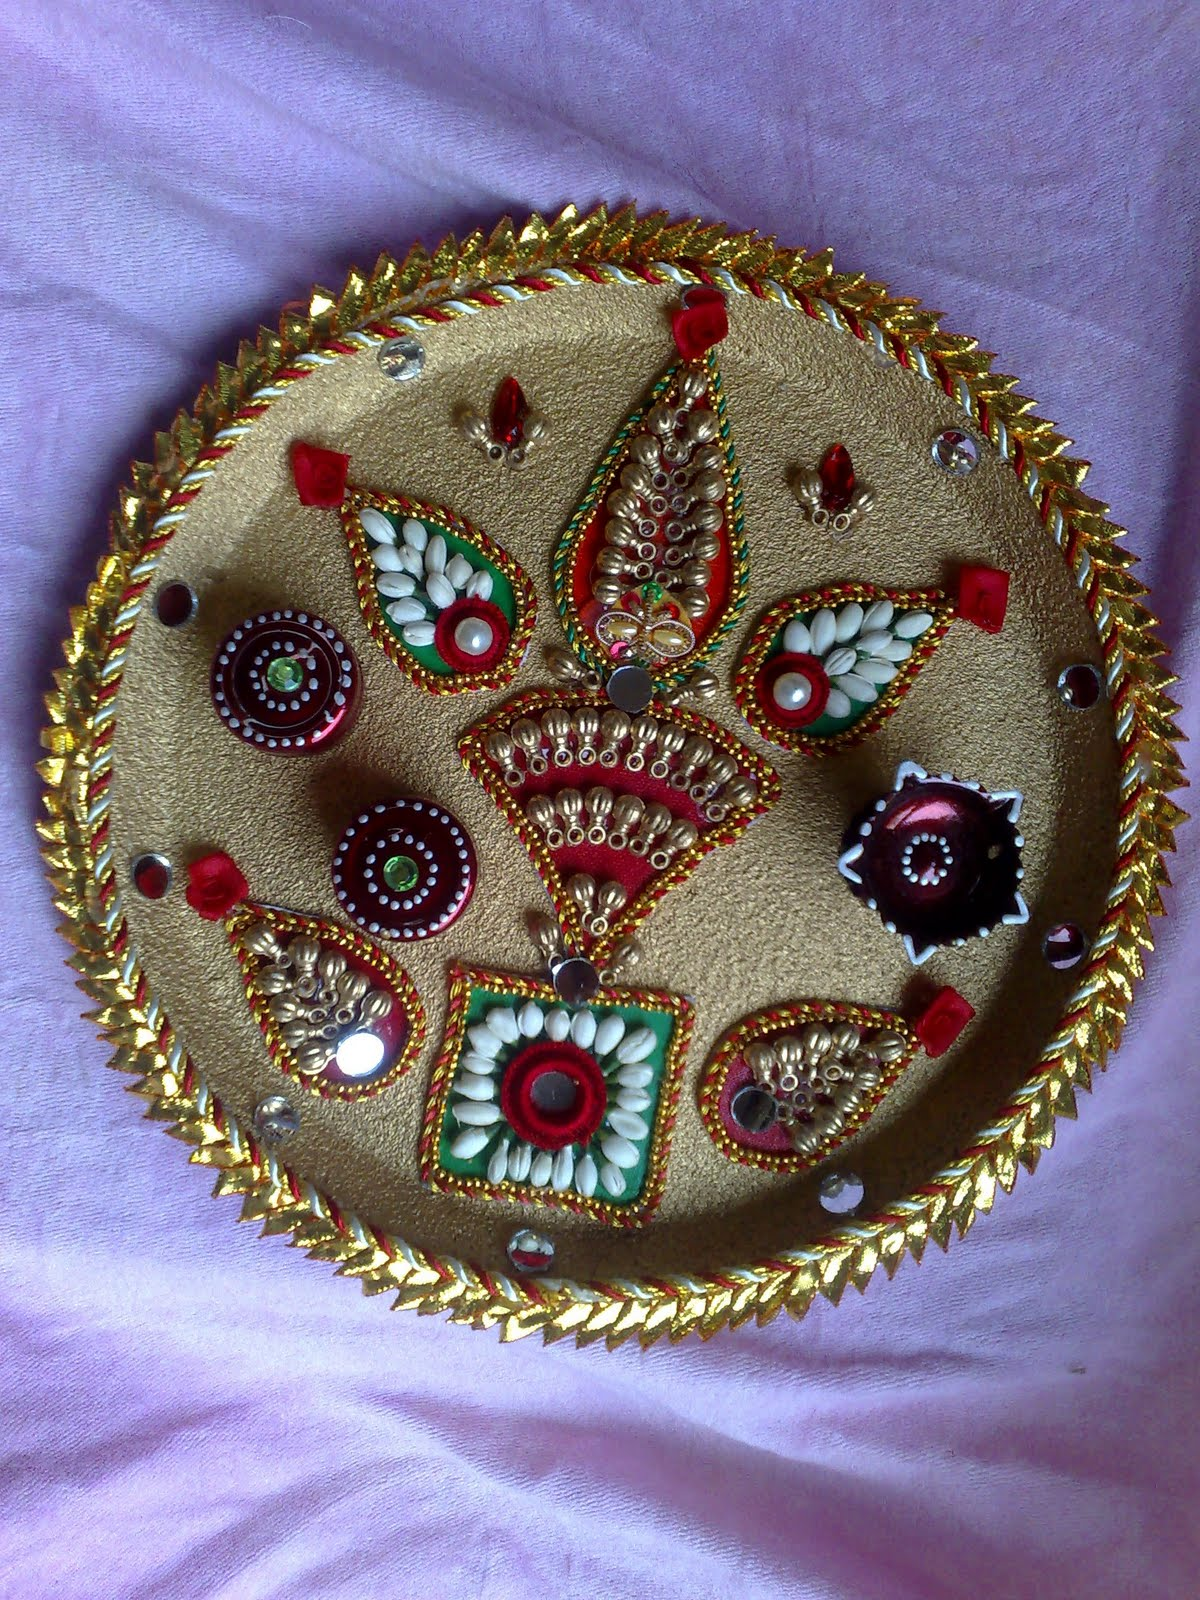 Ranjana arts www ranjanaarts com rakhi thali decorative for Aarti thali decoration pictures navratri